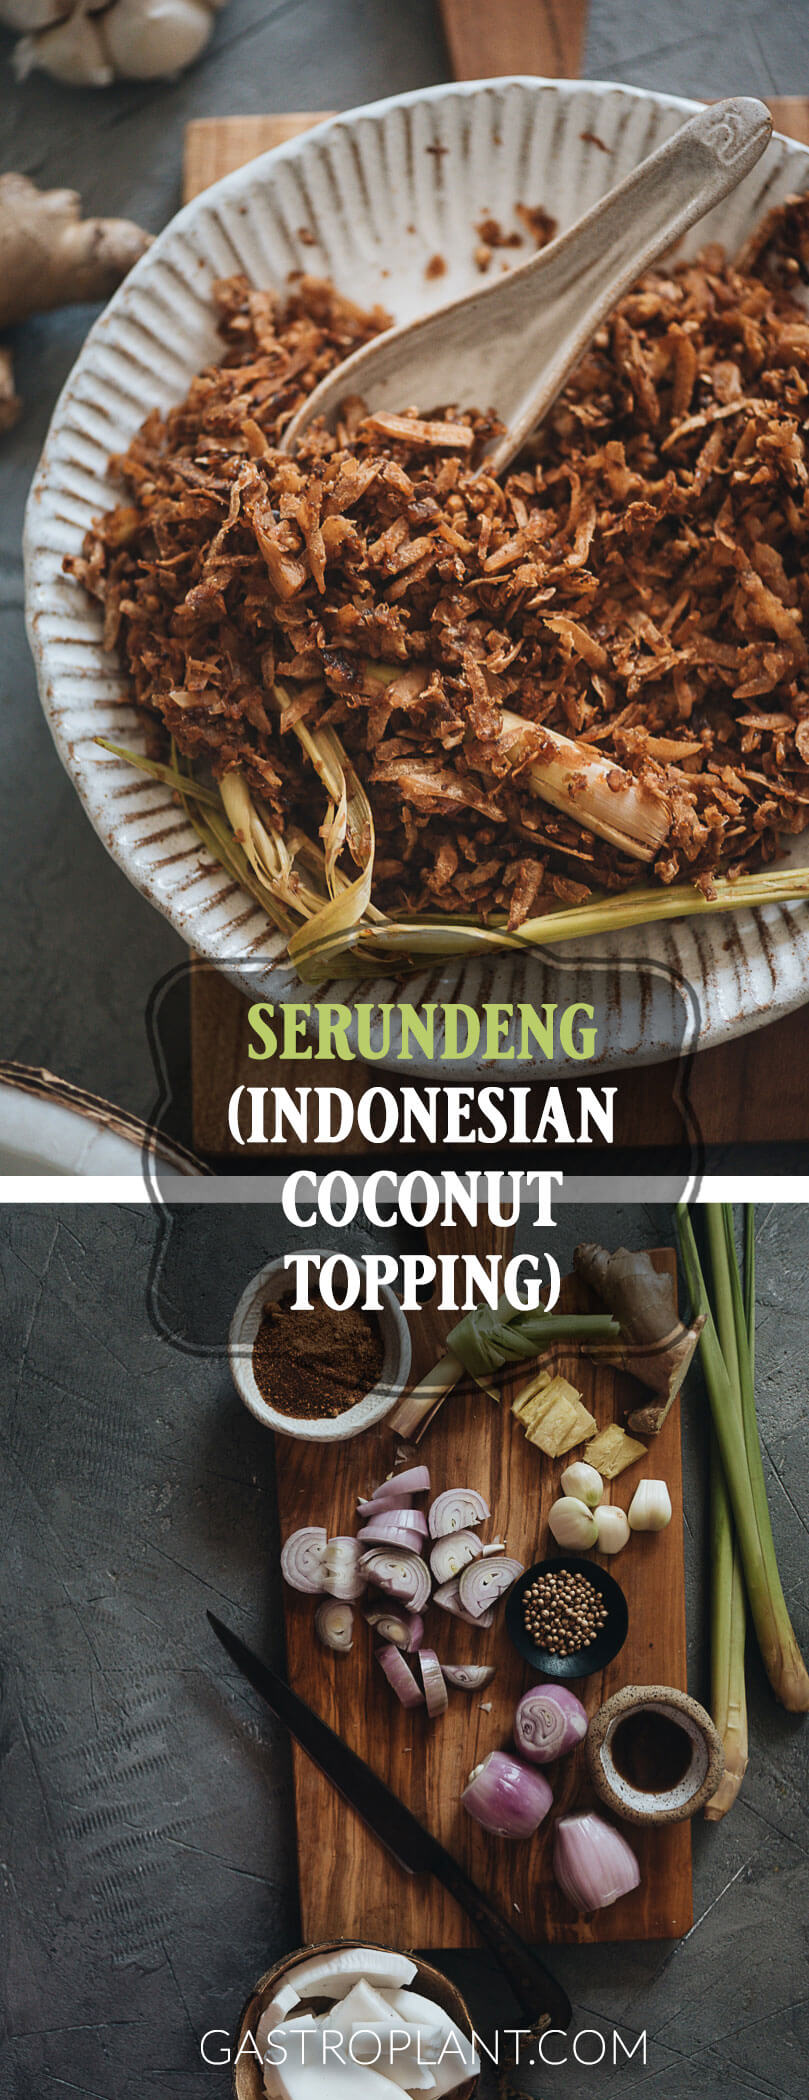 Easy Vegan Serundeng - Indonesian Coconut Topping Collage